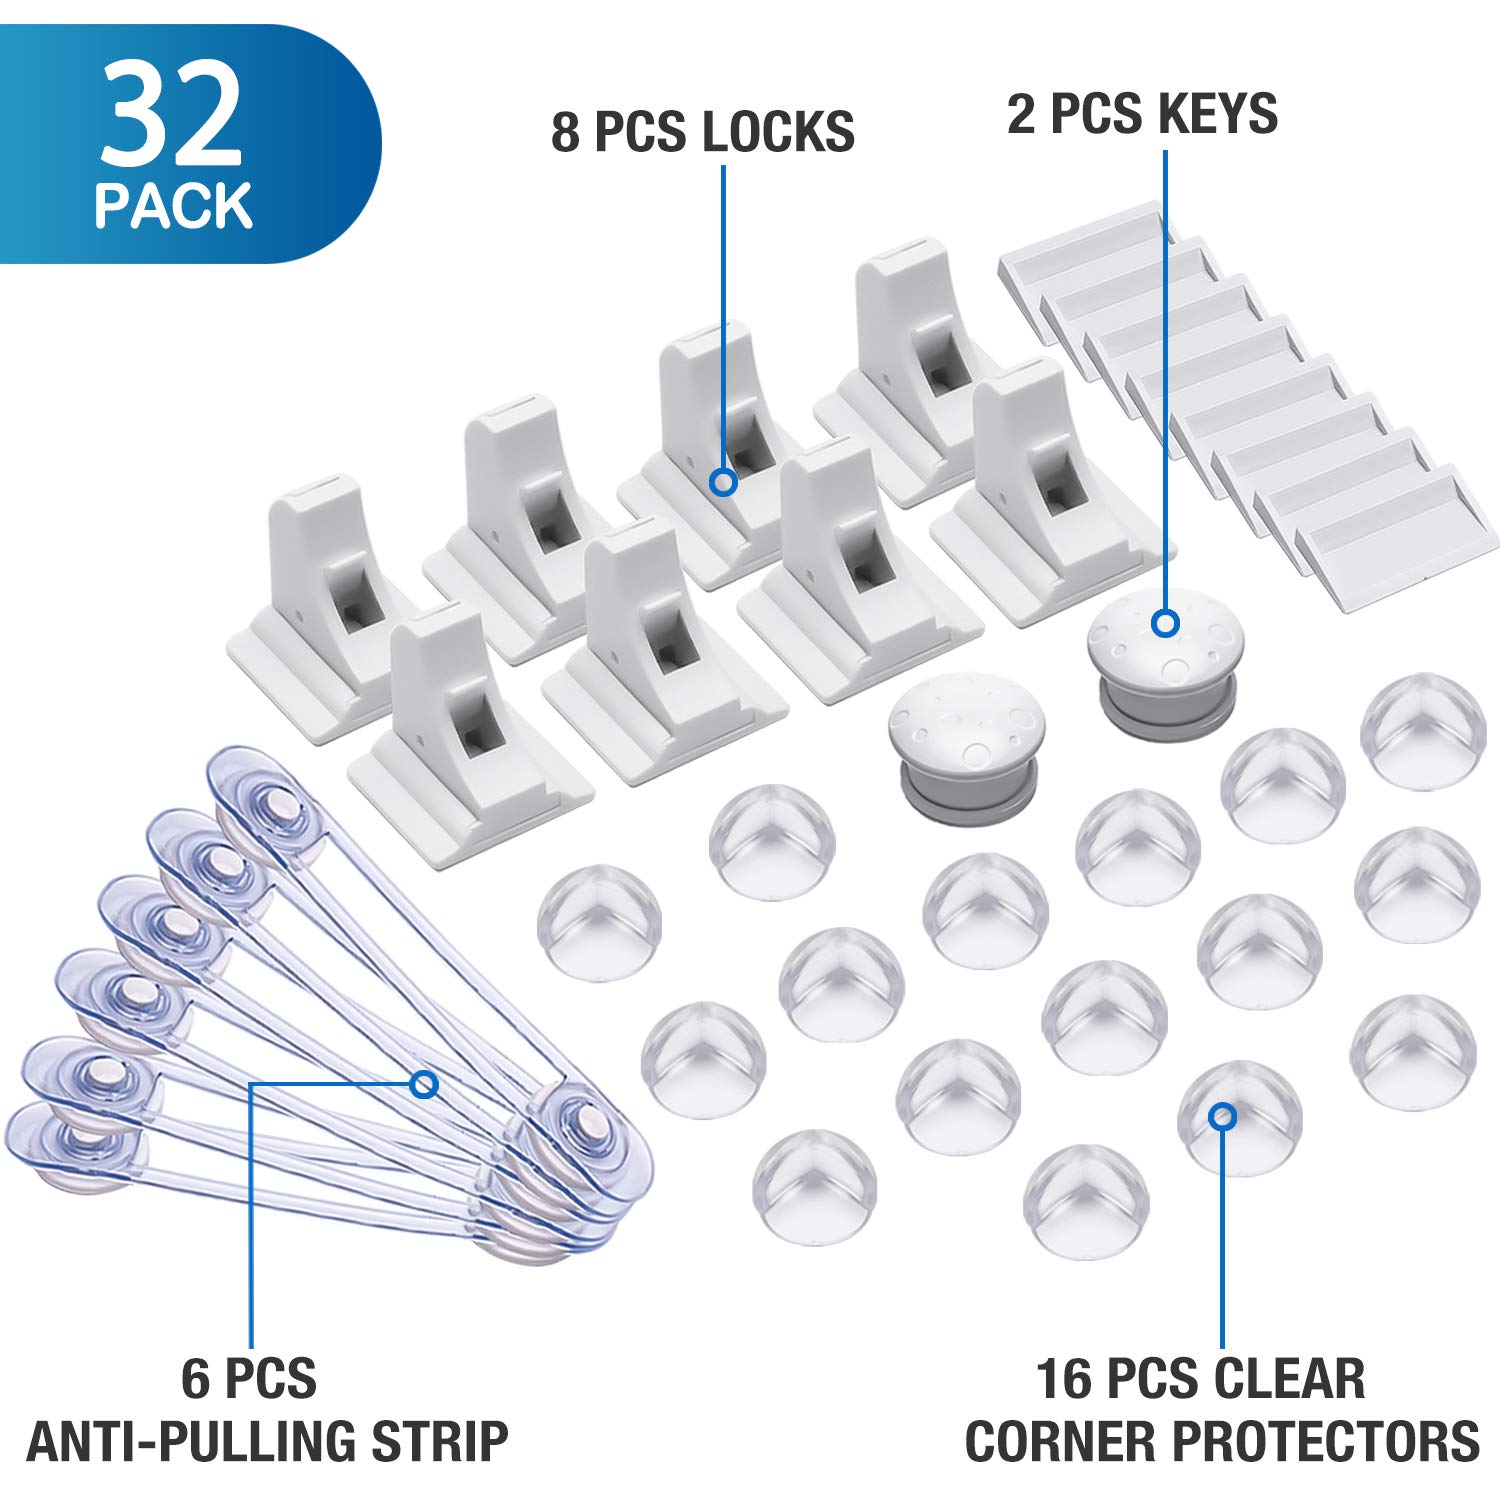 Baby Proofing Kit, 32 Pcs Child Safety Cupboard Locks - 8 Cupboard Locks+2 Keys, 16 Corner Protectors, 6 Baby Safety Cupboard Straps, No Drill Required- Best Baby Safety Set AU Uion